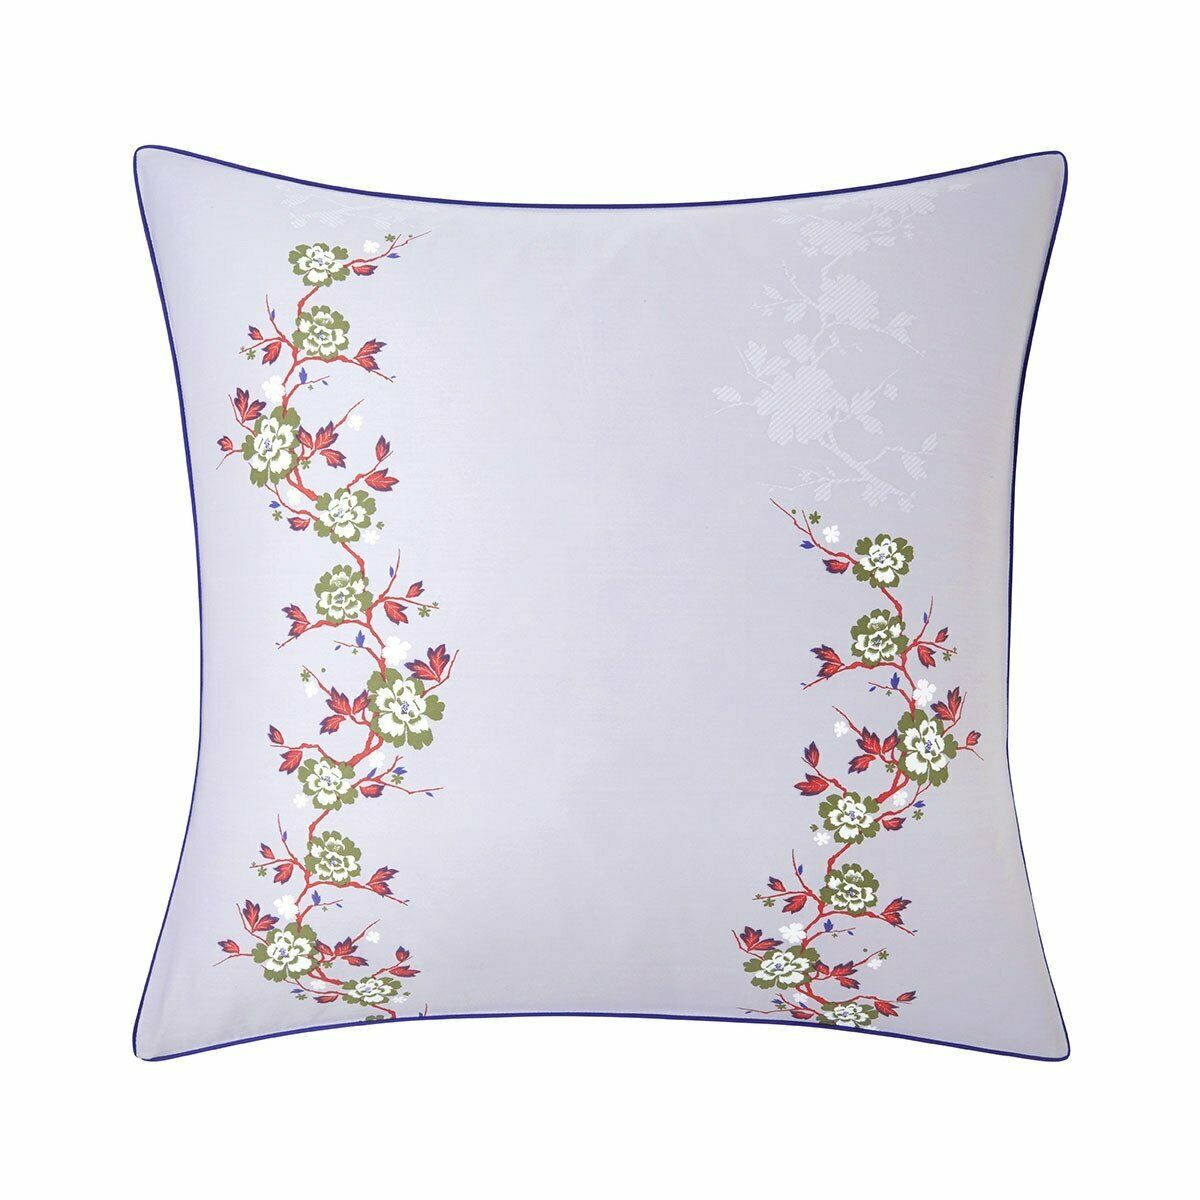 QIPAO BY KENZO - COTTON SATEEN PILLOW SHAM WITH FLORAL VINES